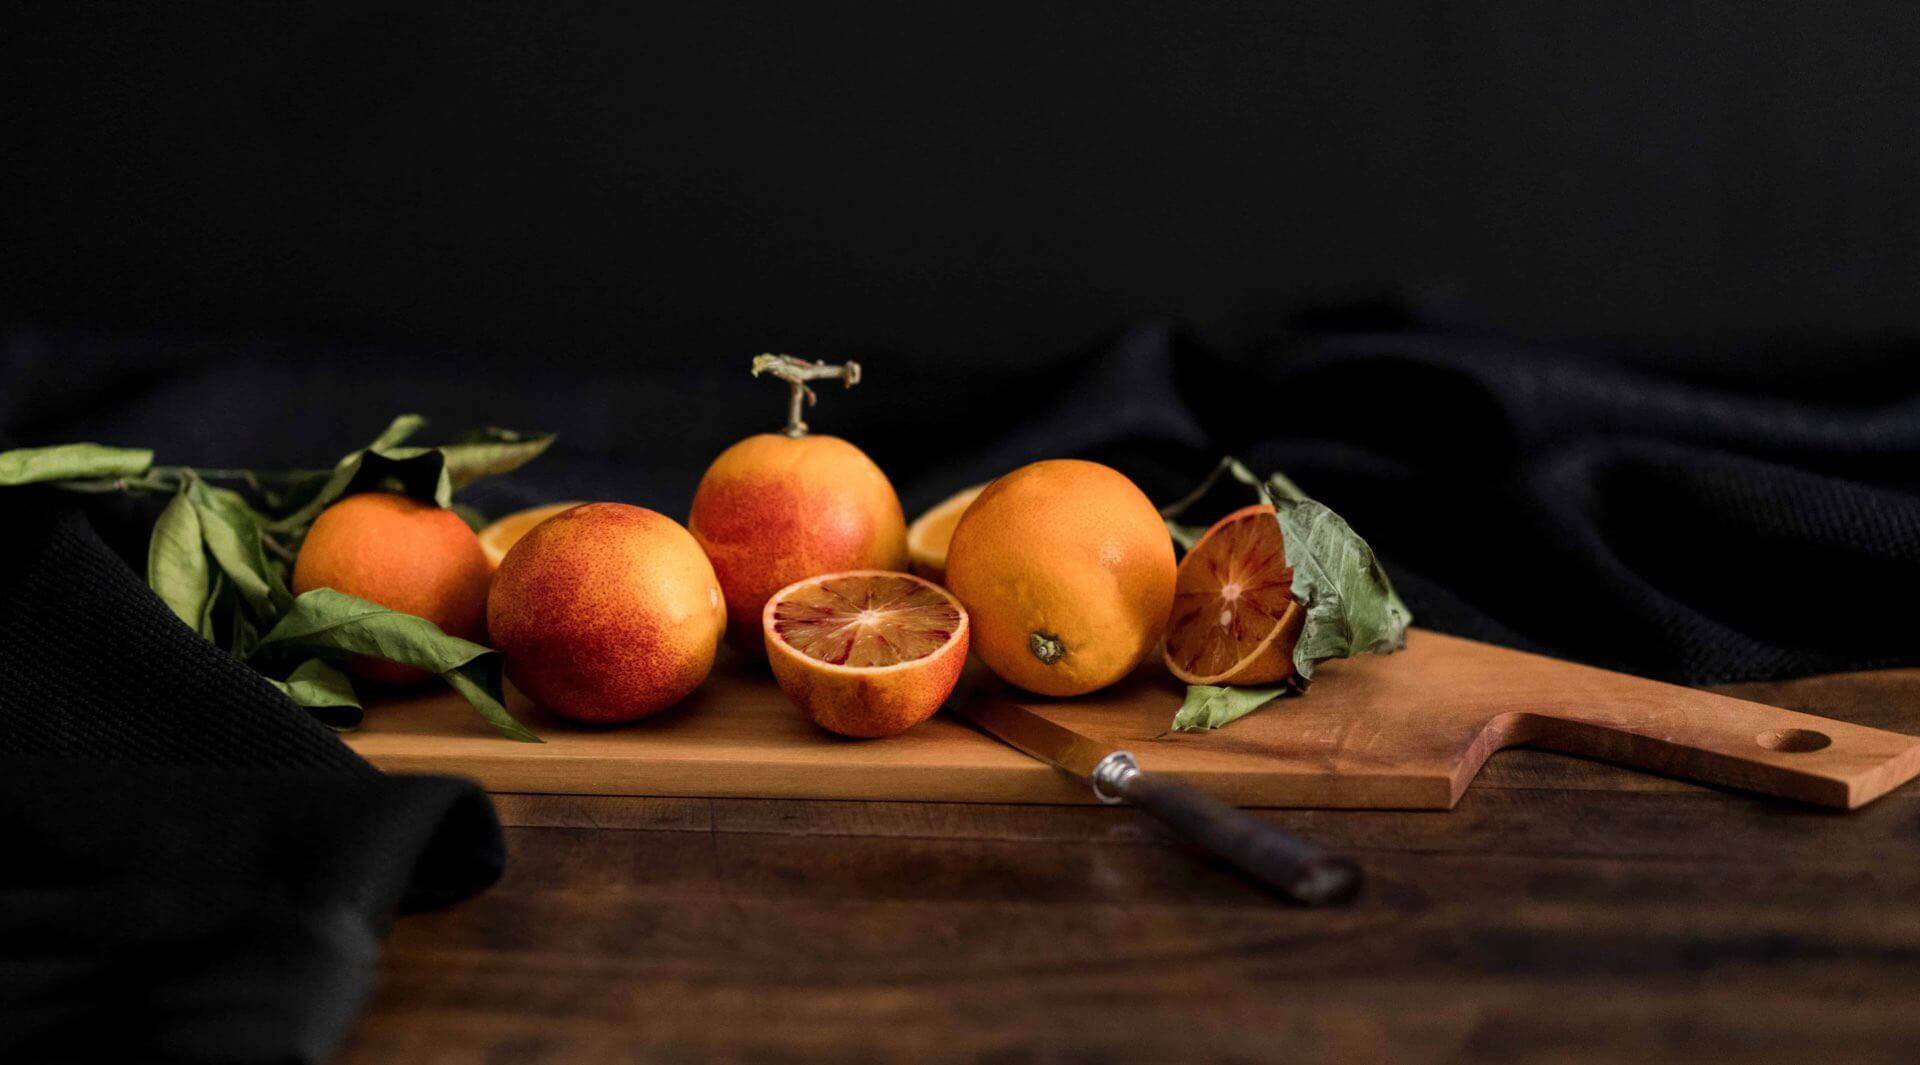 Oranges on a chopping board header image for The Food Image